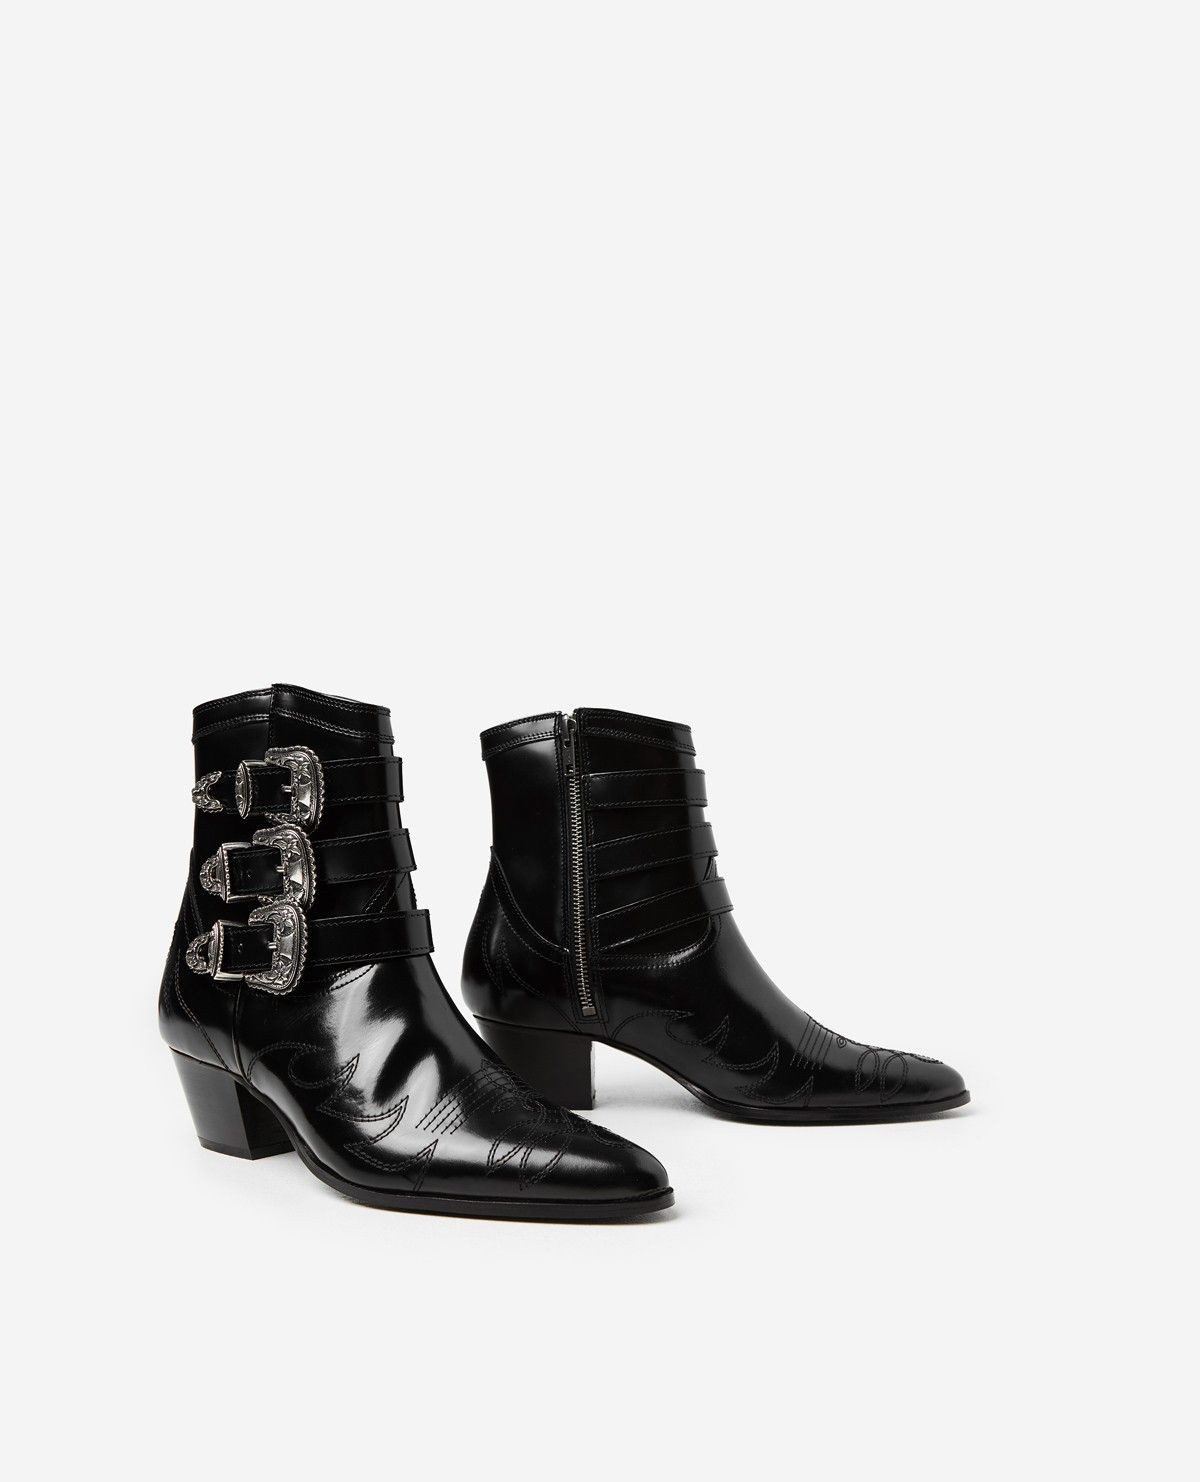 6470798569bcac Black leather cowboy boots with country-style buckles - Women - The Kooples